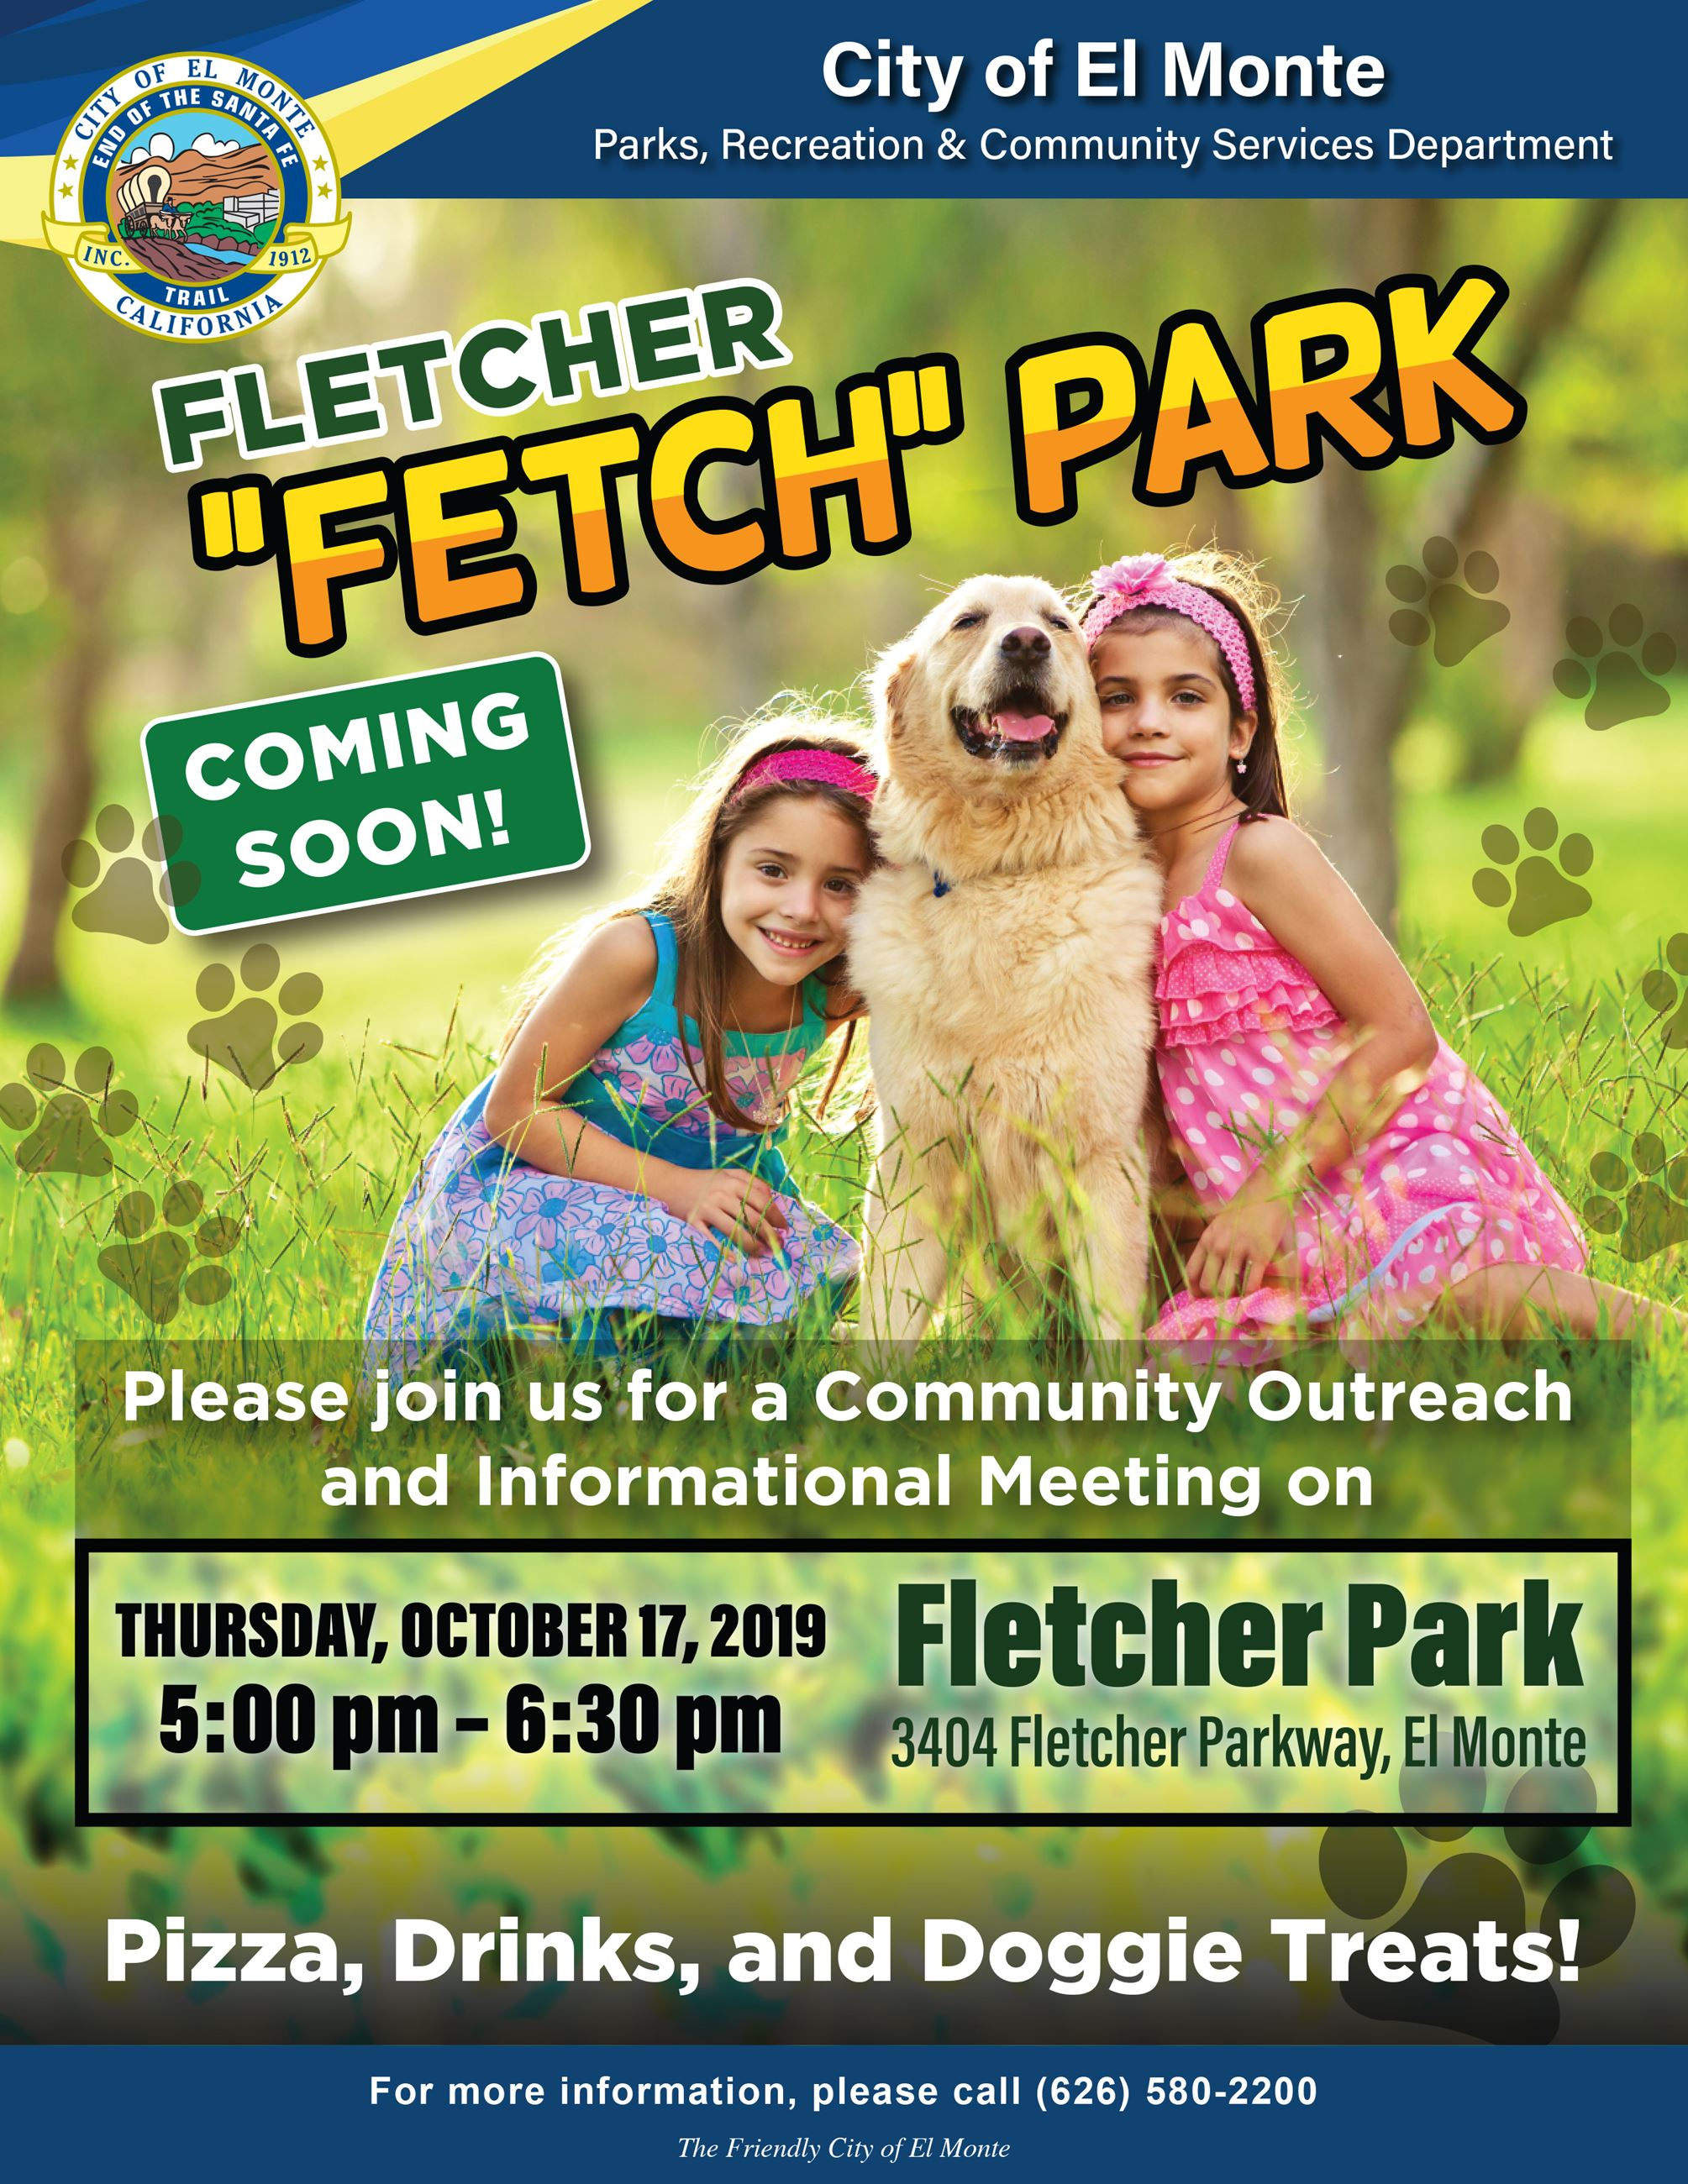 Dog Park Outreach 09232019_edit 08 final